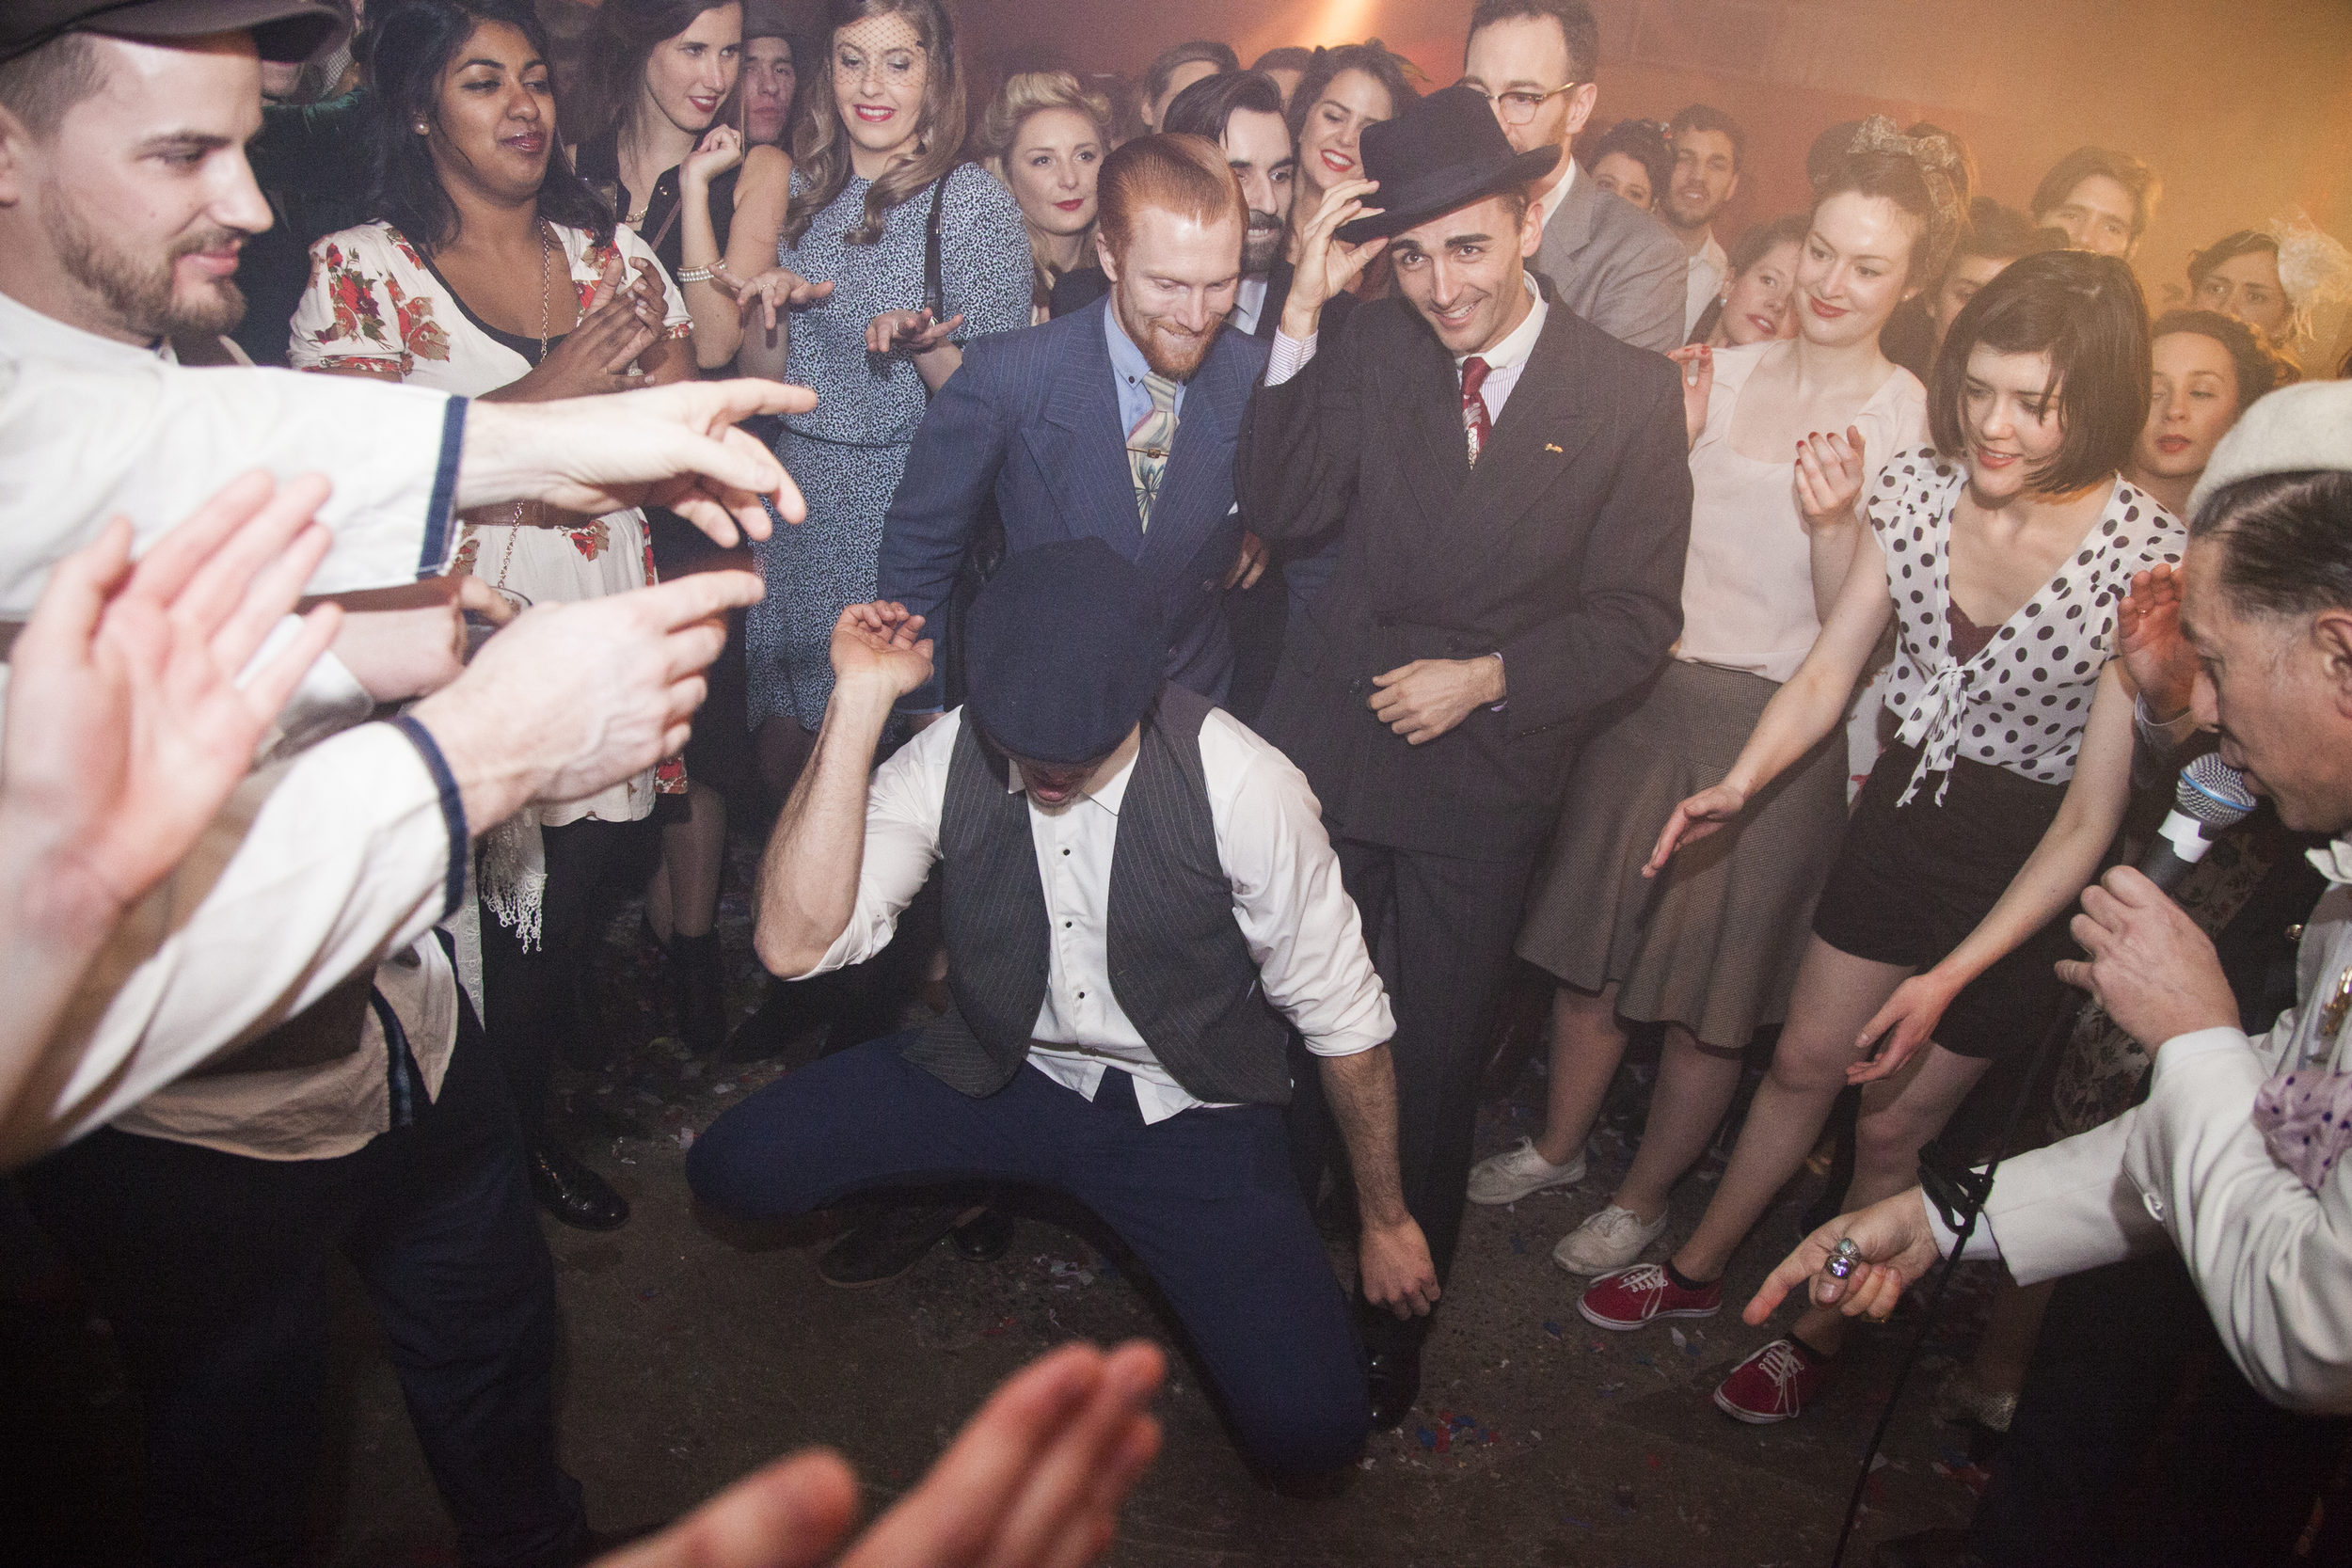 Dance classes at The Blitz Party in London